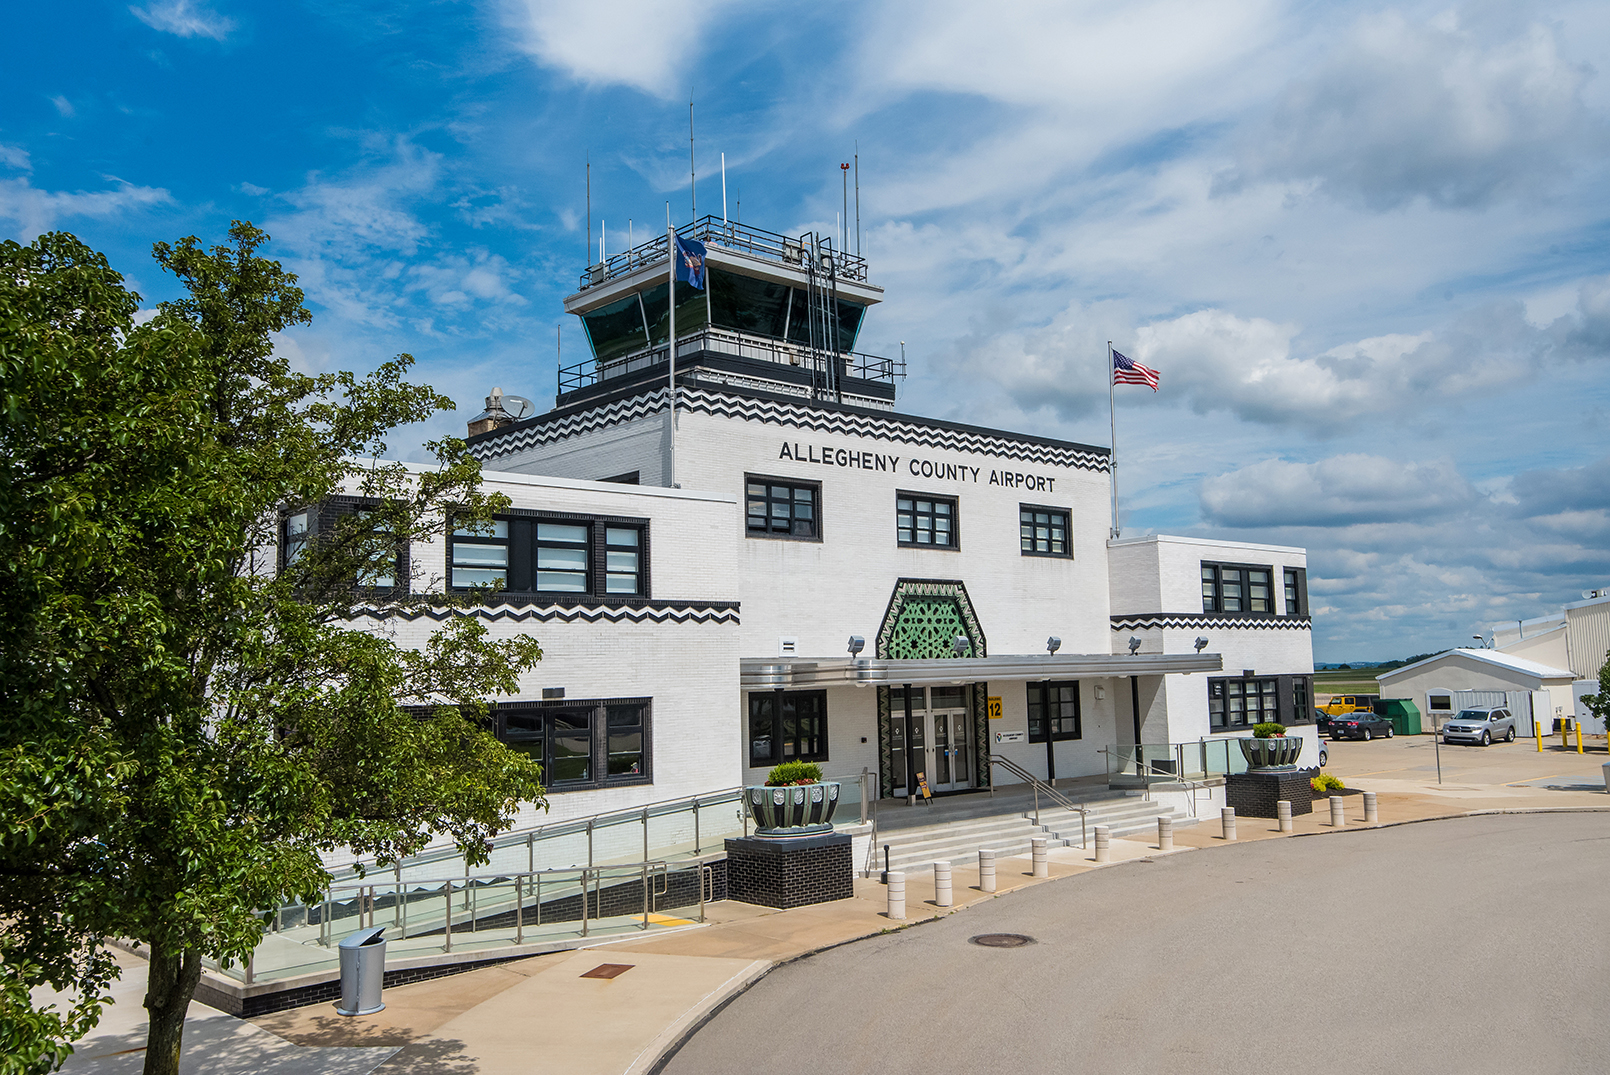 Allegheny County Airport Commemorates 90th Anniversary with Community Arts Festival and Open House Event